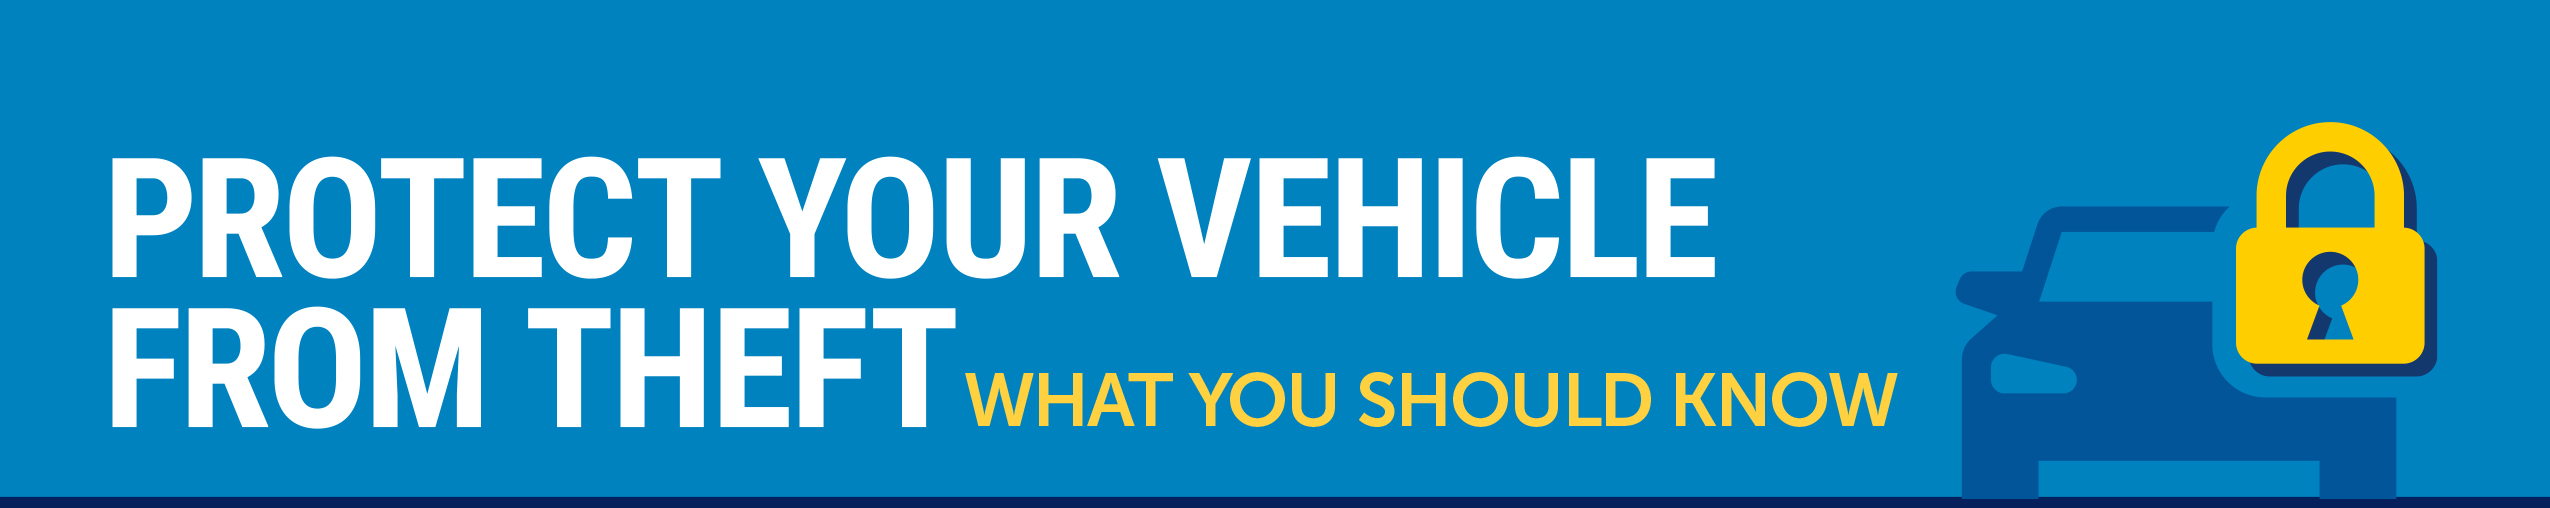 Vehicle Theft Prevention Month logo